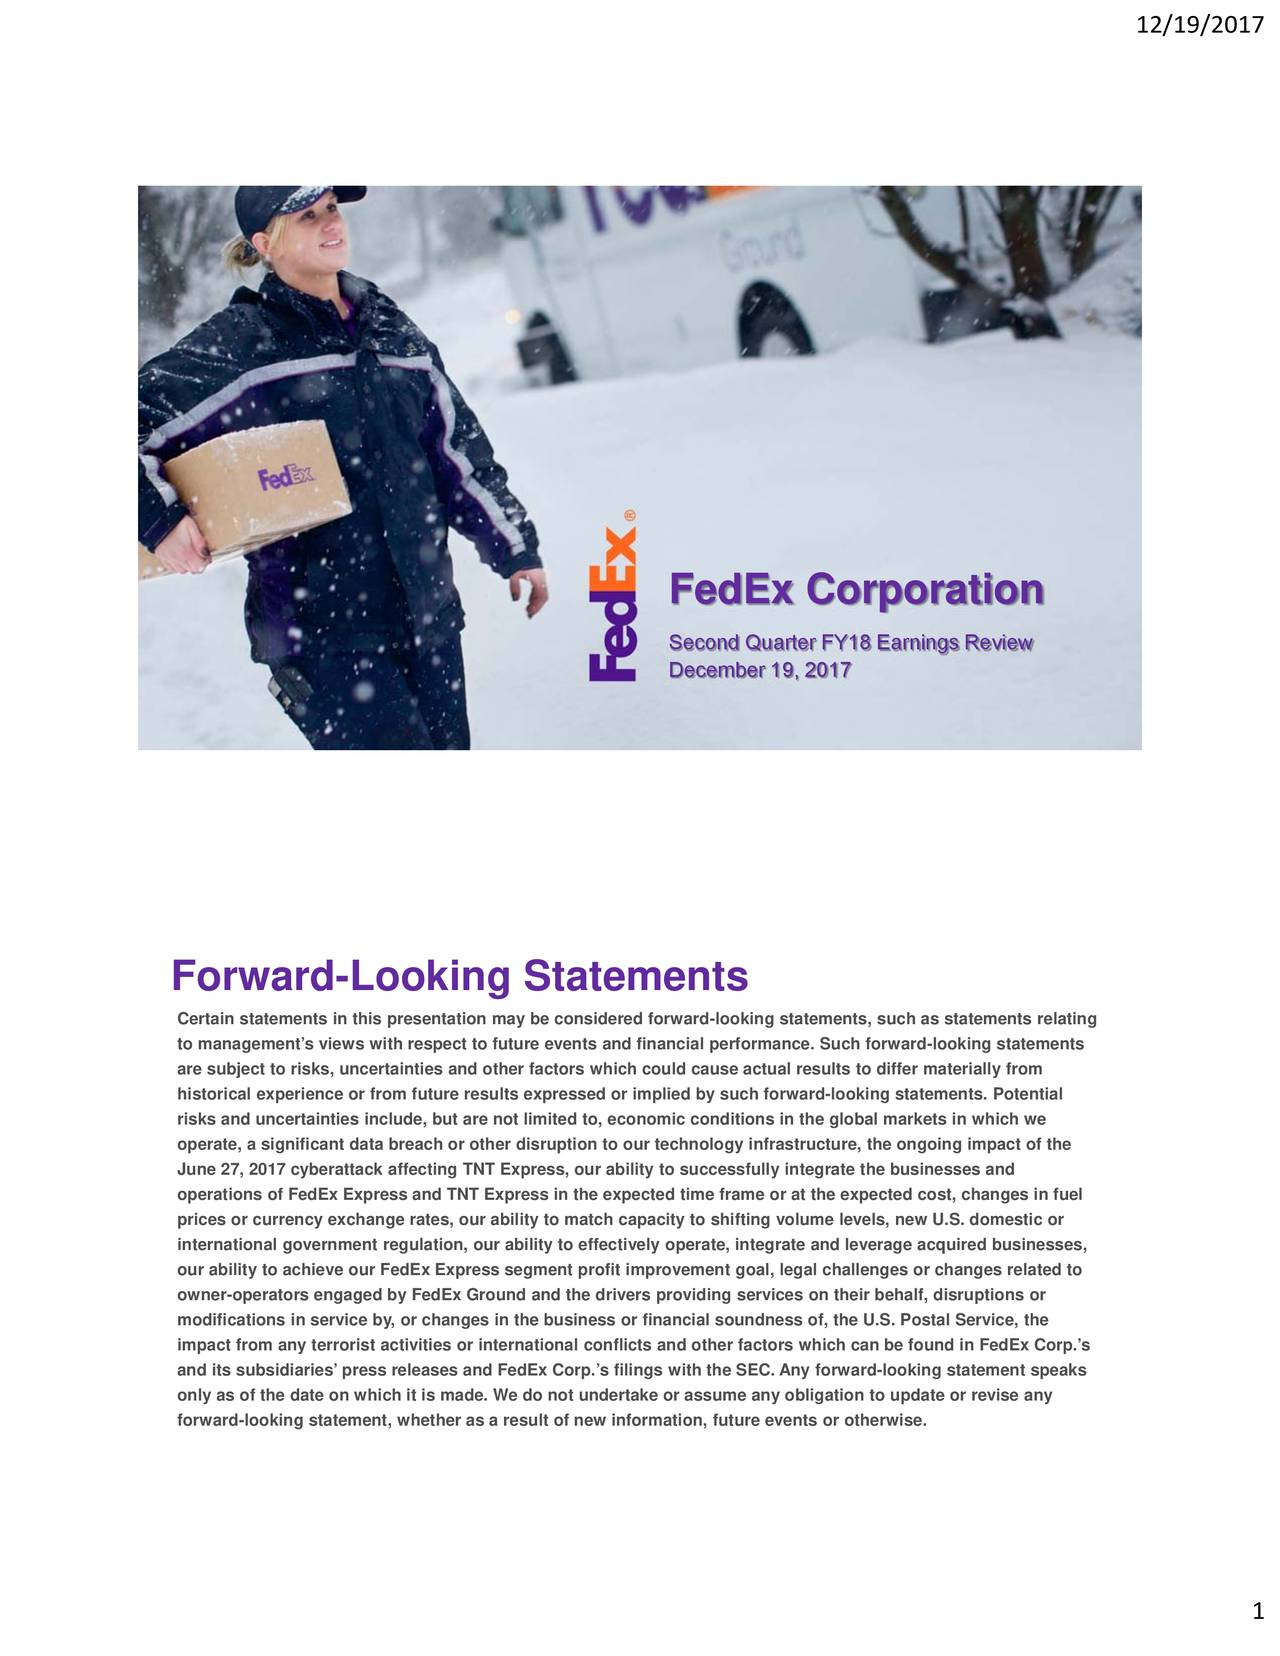 FedEx Corporation Second Quarter FY18 Earnings Review December 19, 2017 Forward-Looking Statements Certain statements in this presentation may be considered forward-looking statements, such as statements relating to management's views with respect to future events and financial performance. Such forward-looking statements are subject to risks, uncertainties and other factors which could cause actual results to differ materially from historical experience or from future results expressed or implied by such forward-looking statements. Potential risks and uncertainties include, but are not limited to, economic conditions in the global markets in which we operate, a significant data breach or other disruption to our technology infrastructure, the ongoing impact of the June 27, 2017 cyberattack affecting TNT Express, our ability to successfully integrate the businesses and operations of FedEx Express and TNT Express in the expected time frame or at the expected cost, changes in fuel prices or currency exchange rates, our ability to match capacity to shifting volume levels, new U.S. domestic or international government regulation, our ability to effectively operate, integrate and leverage acquired businesses, our ability to achieve our FedEx Express segment profit improvement goal, legal challenges or changes related to owner-operators engaged by FedEx Ground and the drivers providing services on their behalf, disruptions or modifications in service by, or changes in the business or financial soundness of, the U.S. Postal Service, the impact from any terrorist activities or international conflicts and other factors which can be found in FedEx Corp.'s and its subsidiaries' press releases and FedEx Corp.'s filings with the SEC. Any forward-looking statement speaks only as of the date on which it is made. We do not undertake or assume any obligation to update or revise any forward-looking statement, whether as a result of new information, future events or otherwise. 1